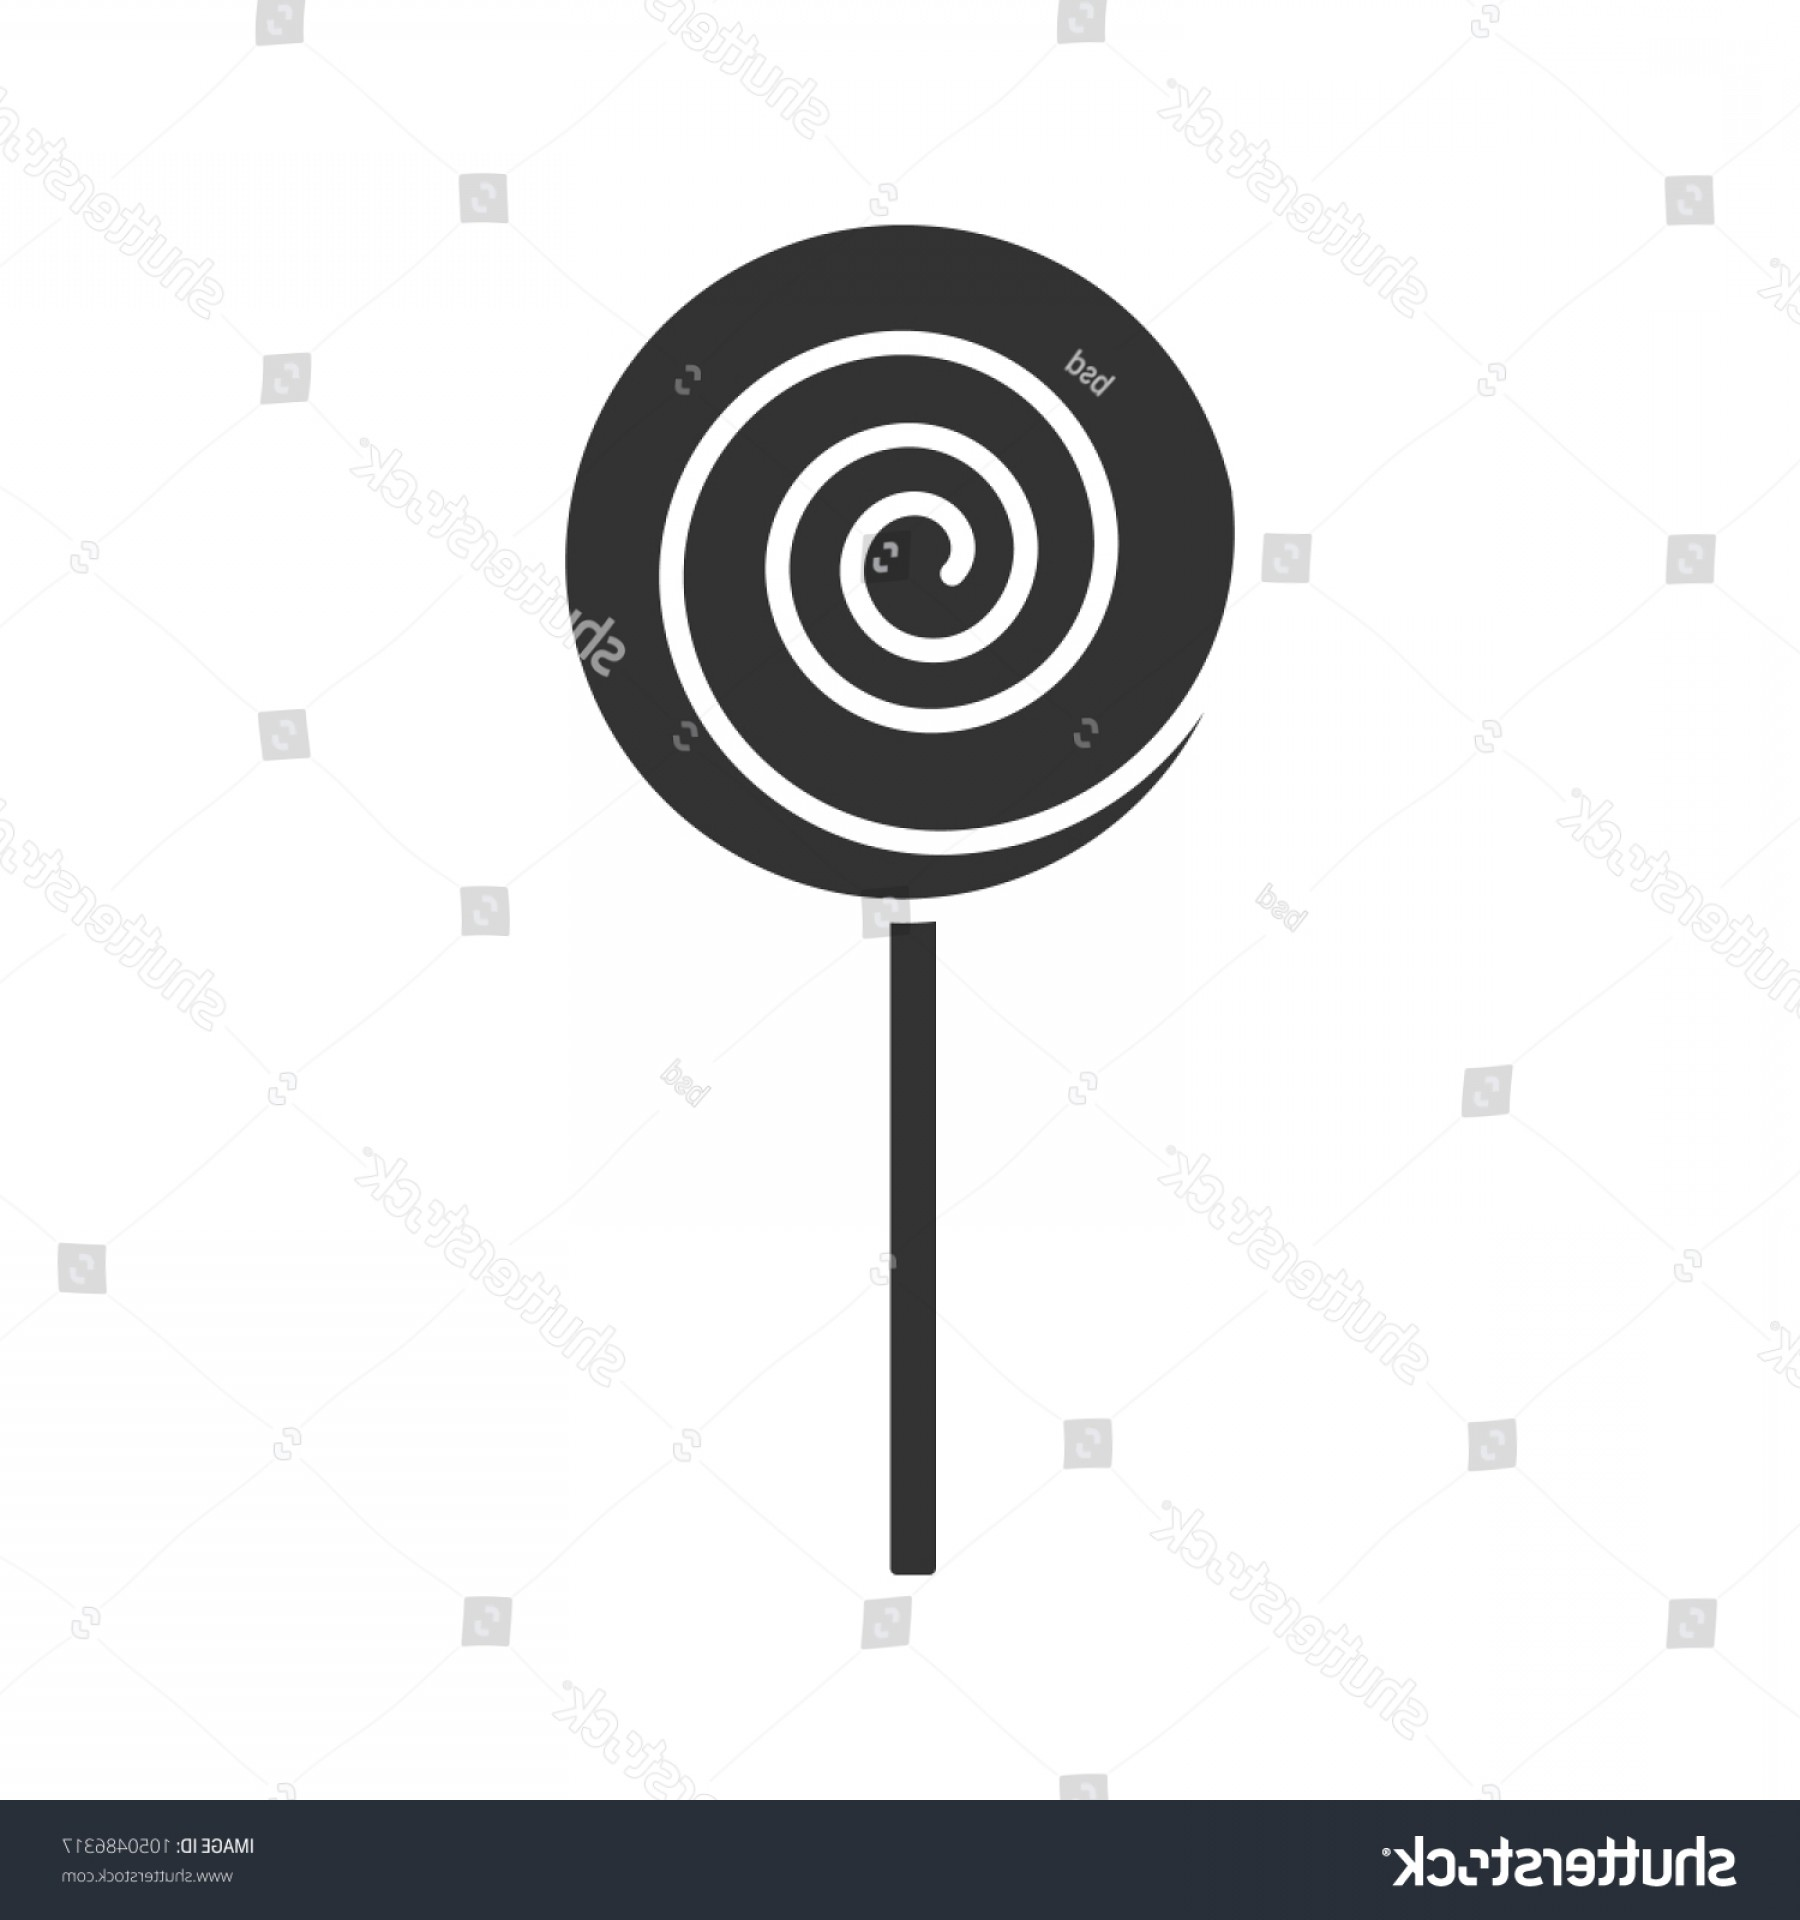 Lollipop Vector Silhouette: Spiral Lollipop Glyph Icon Lolly Sugar